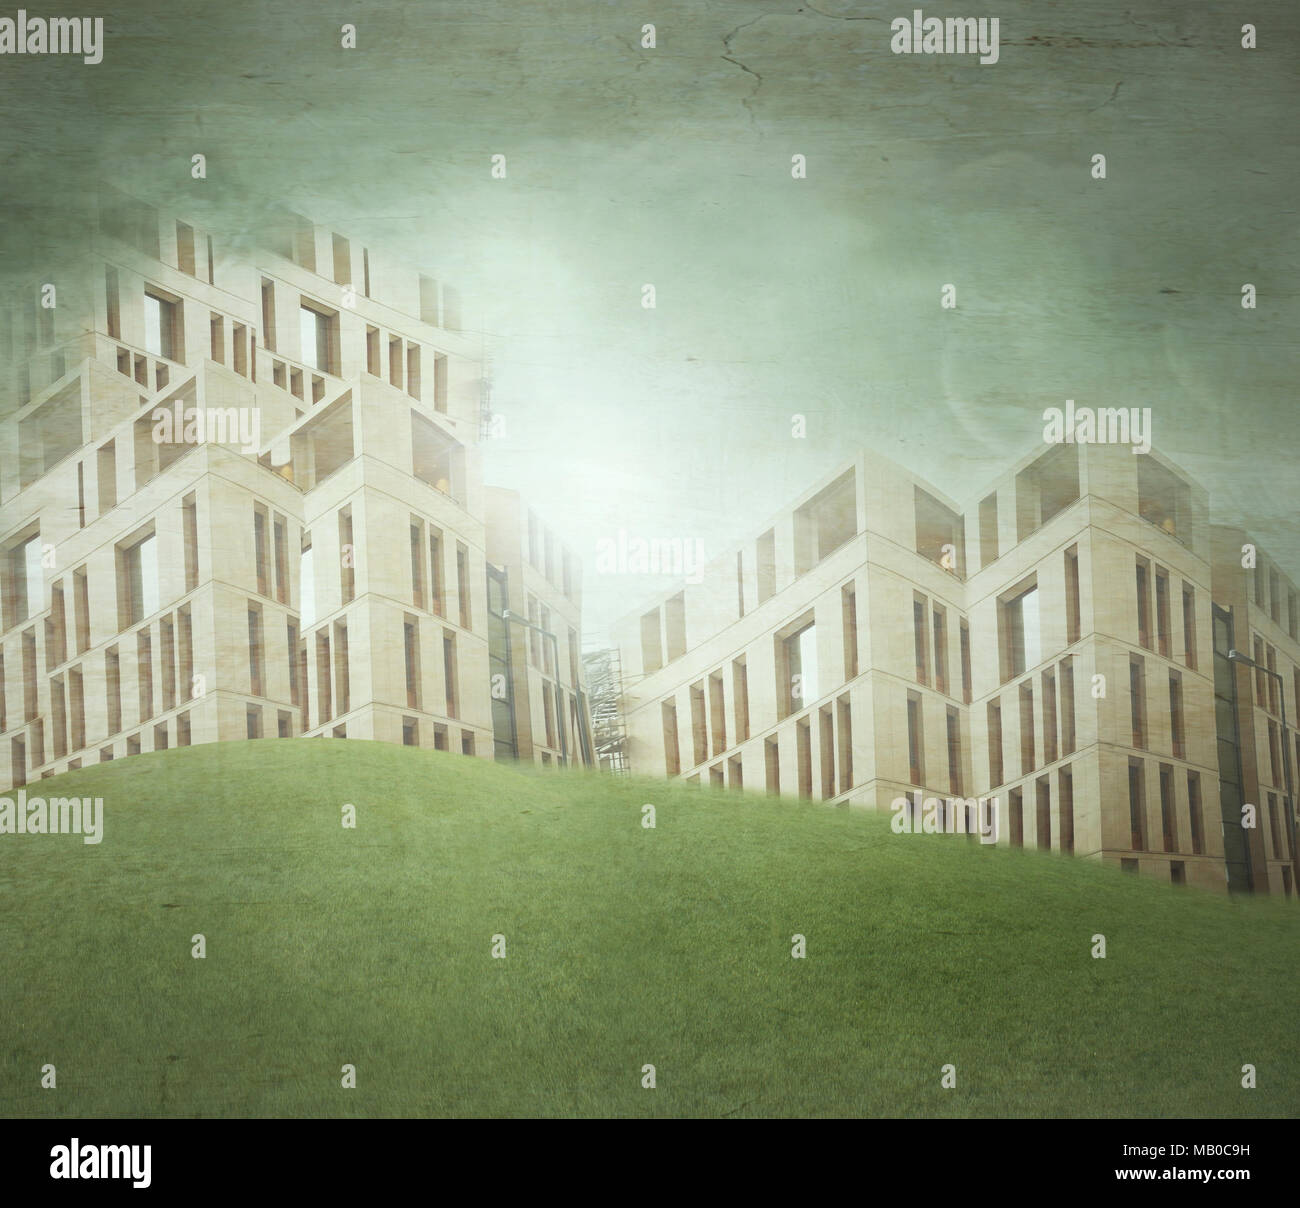 Illustration of a several modern buildings in a surreal landscape - Stock Image